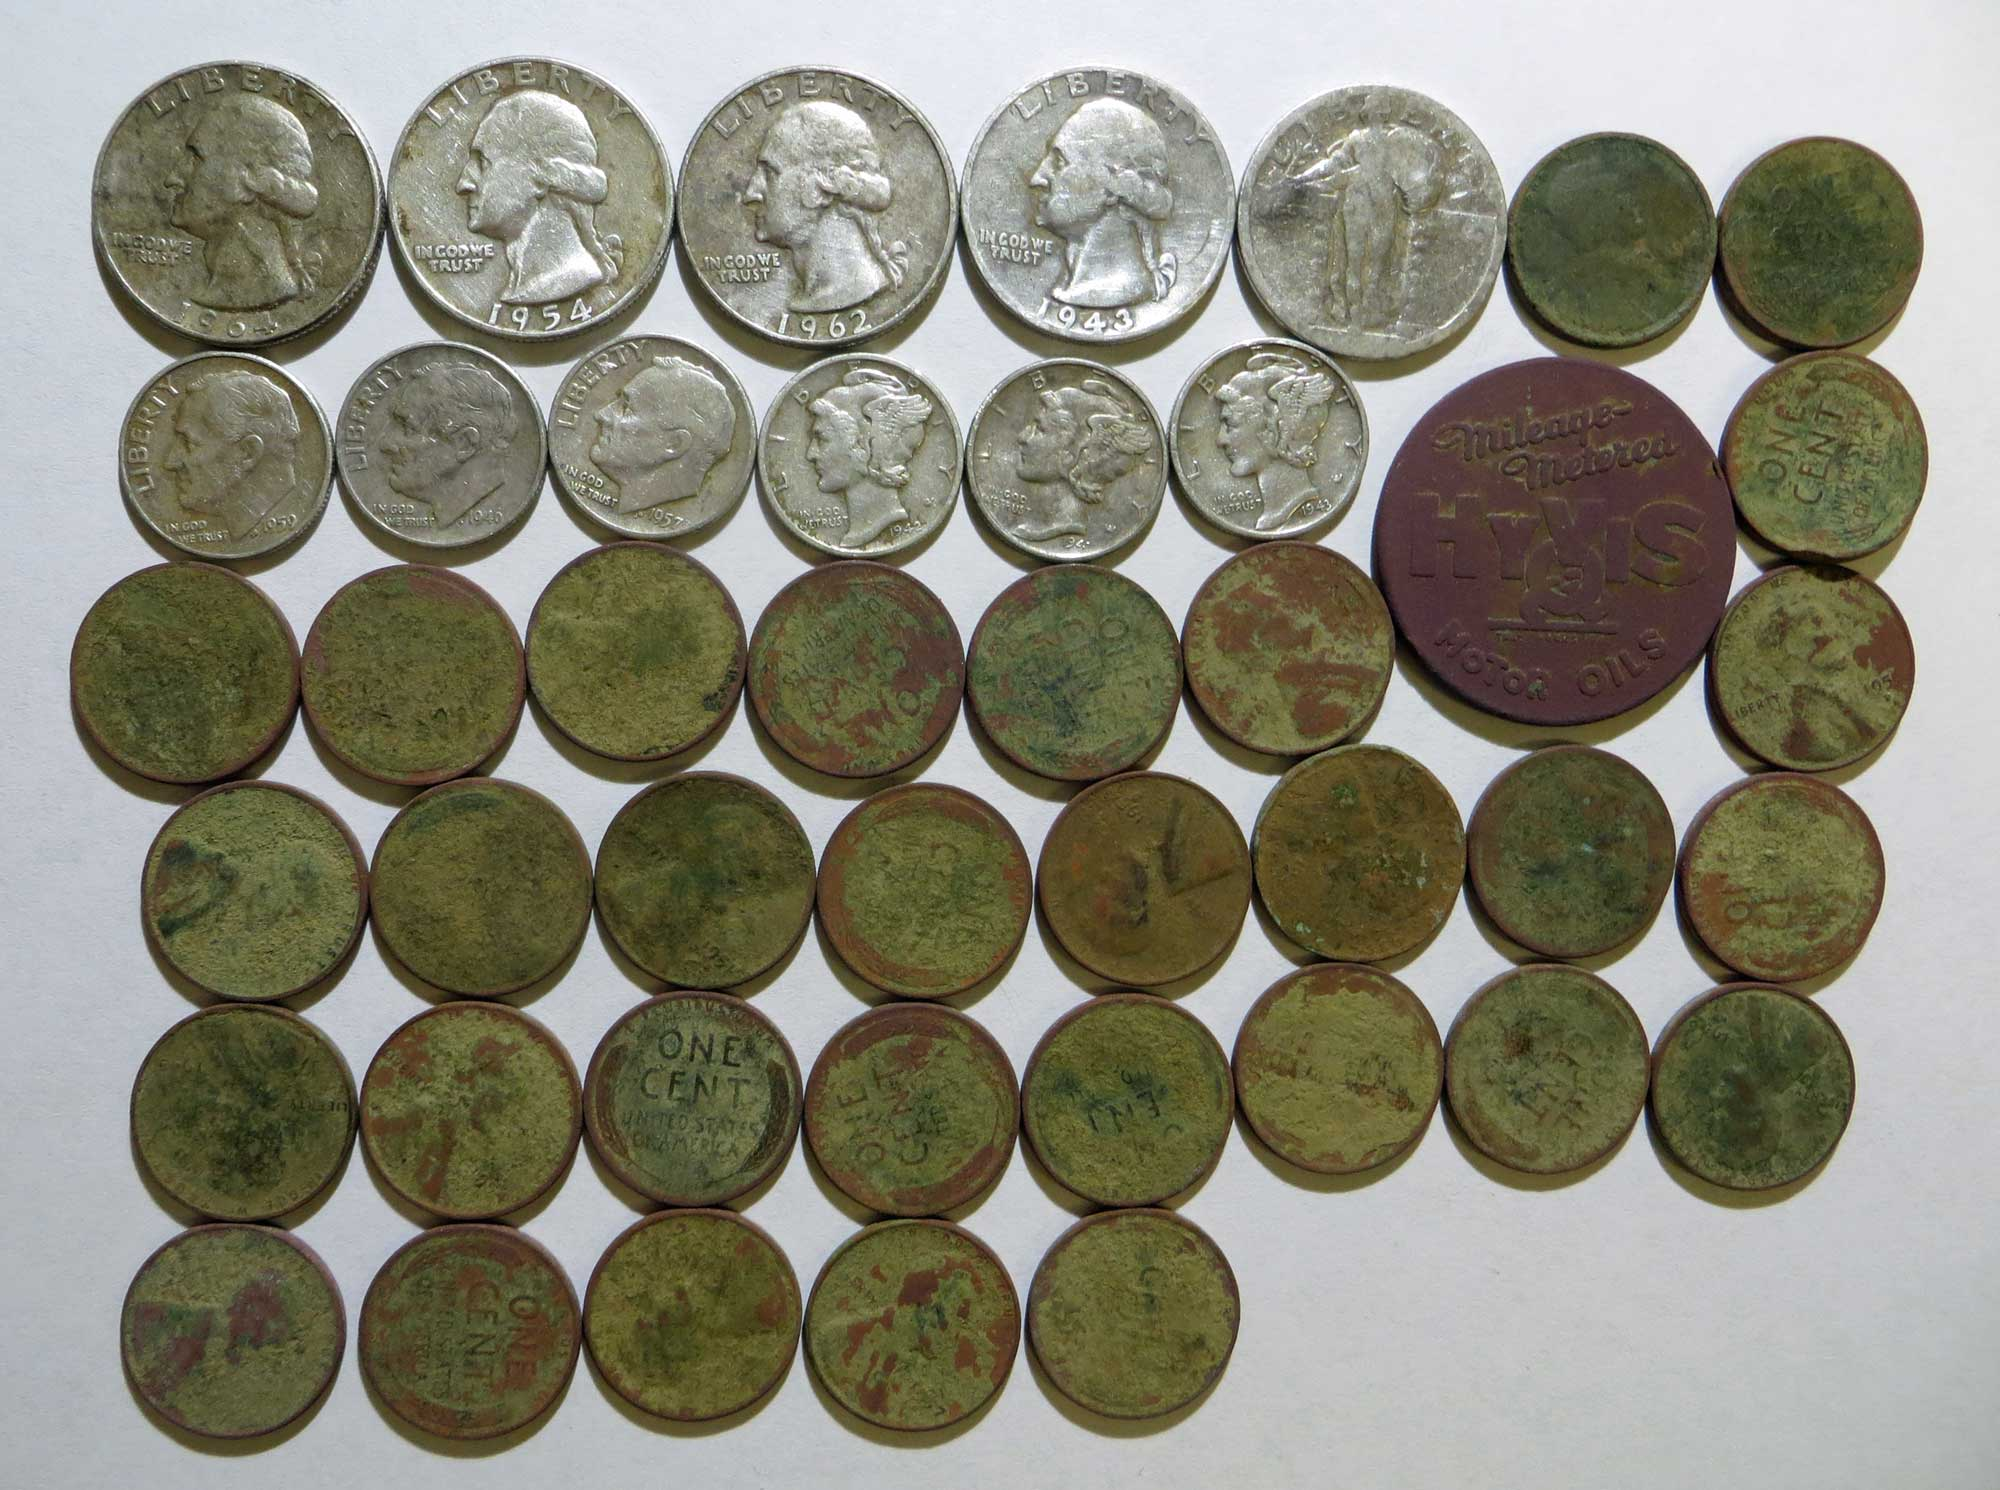 Metal Detecting Best Day Ever 26 Silver Coins In One Day